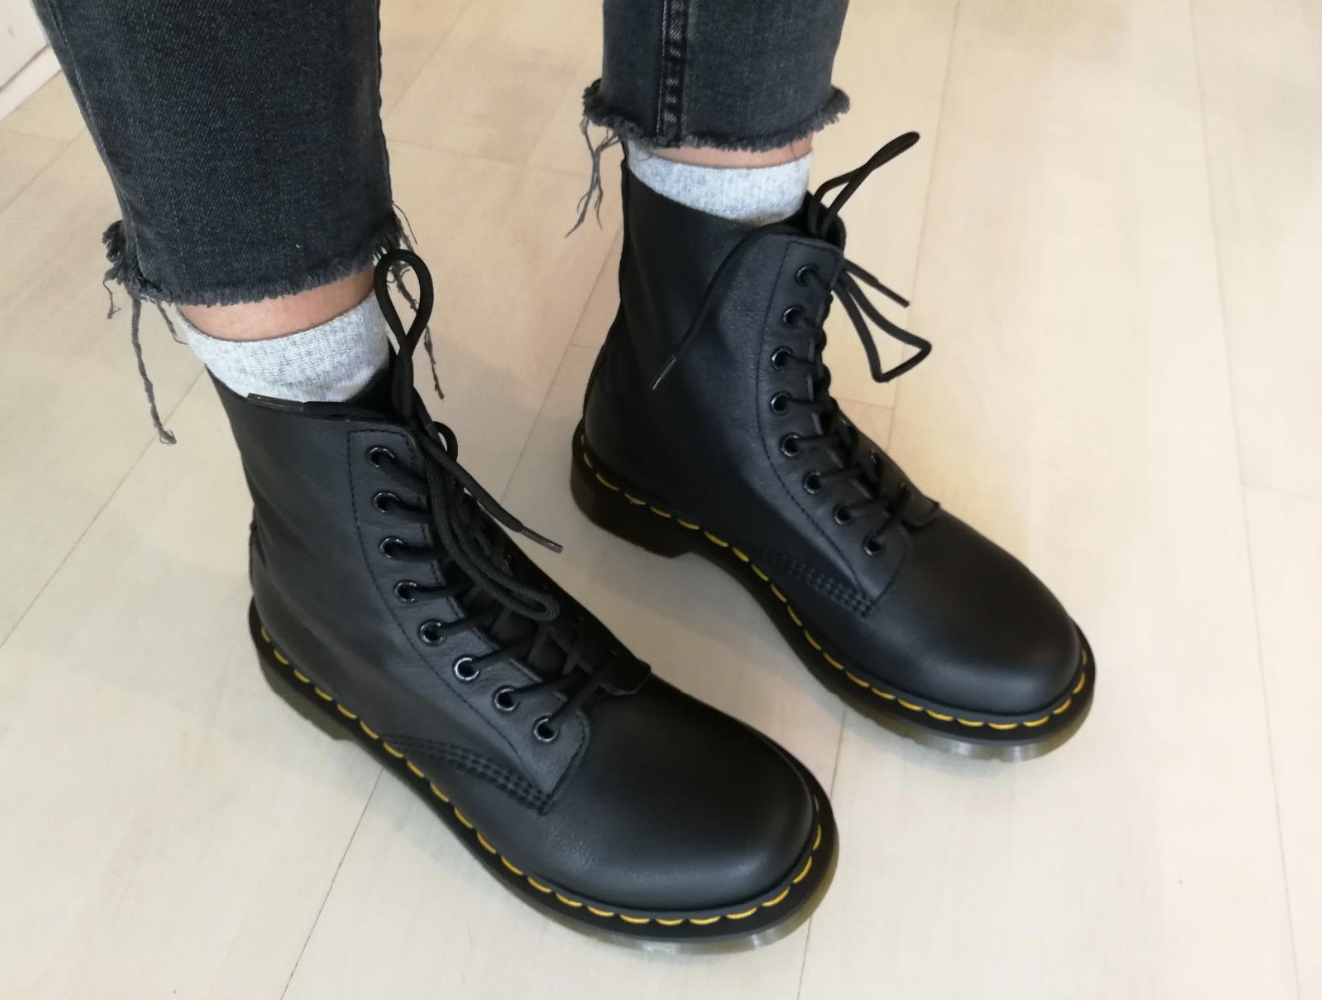 Reviewer wearing the lace-up boots with yellow stitching around the sole